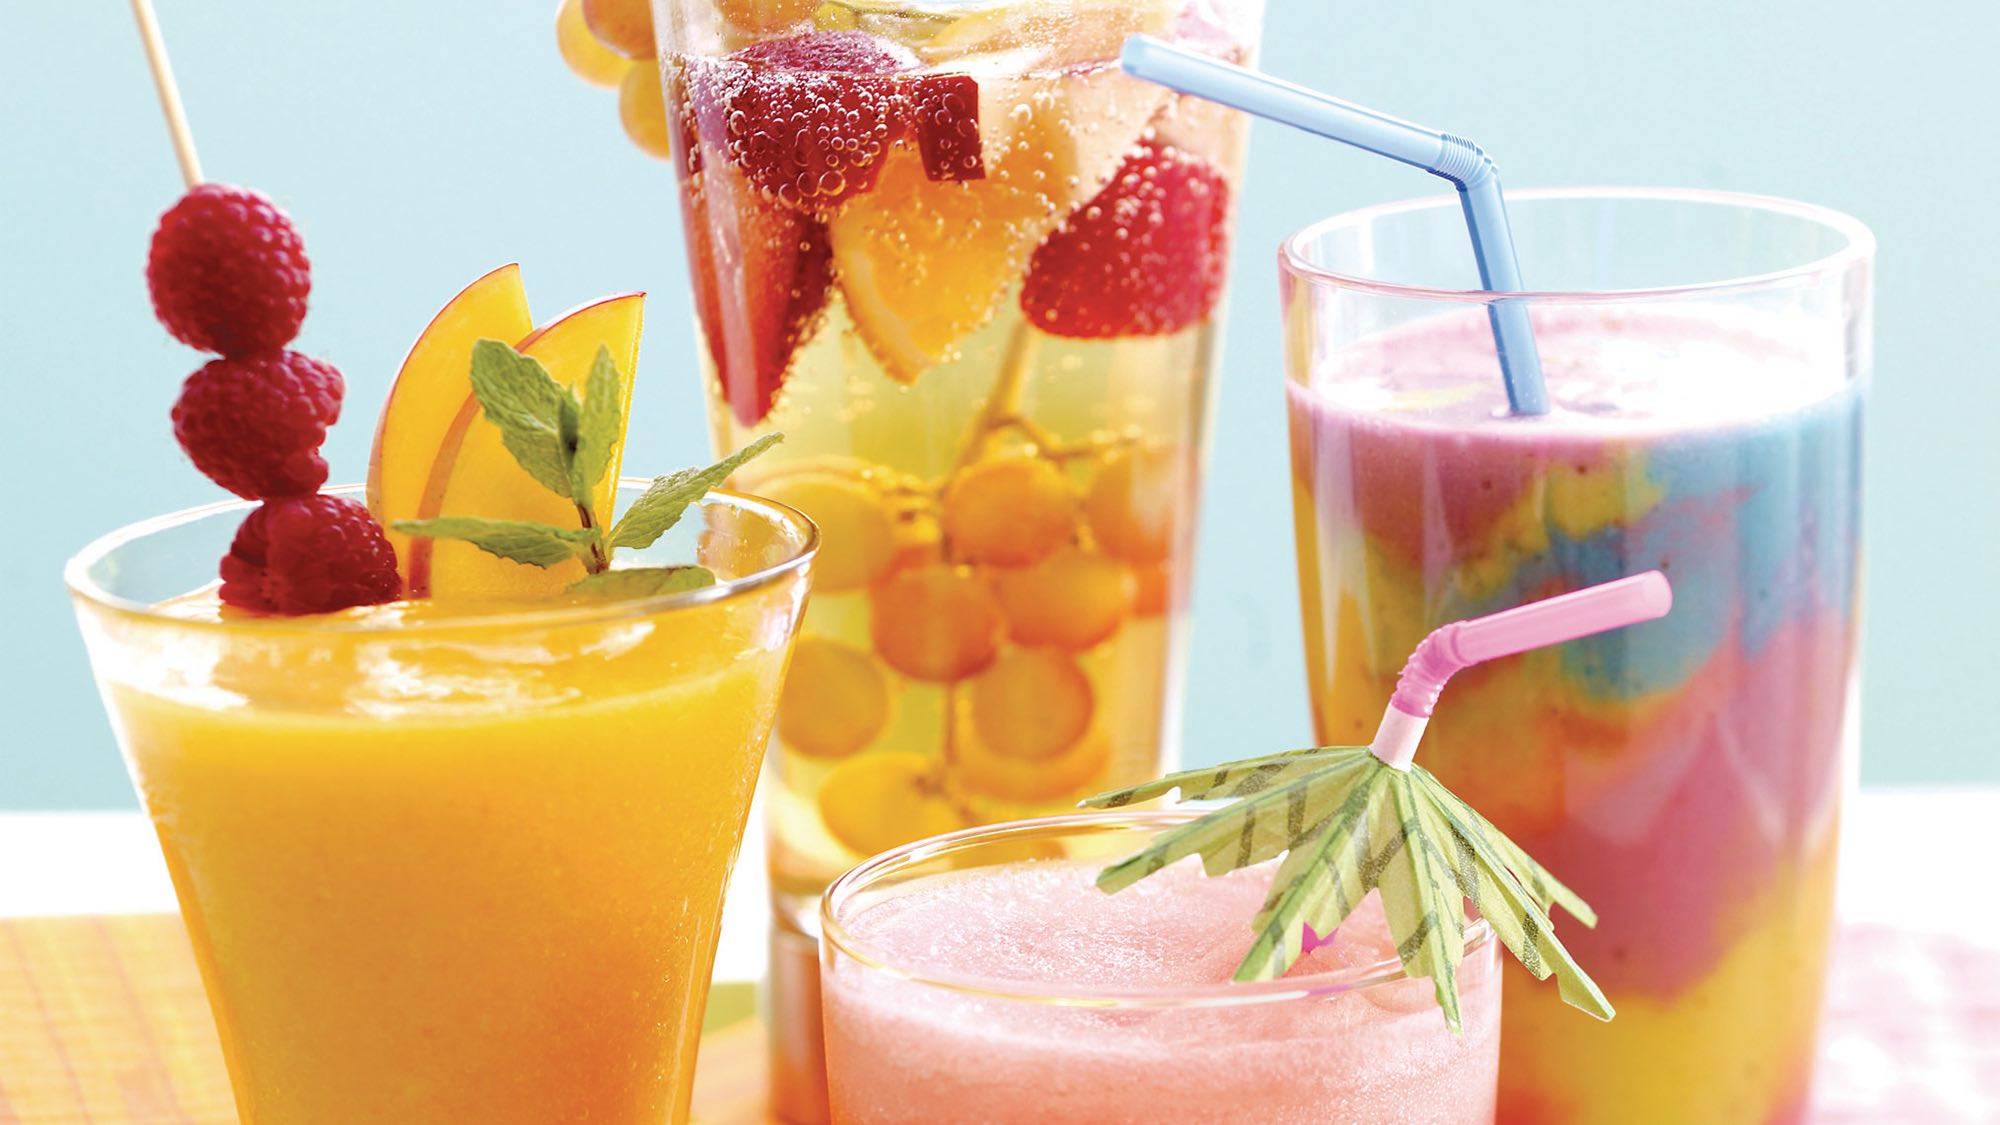 McCormick Fresh Fruit Spritzer